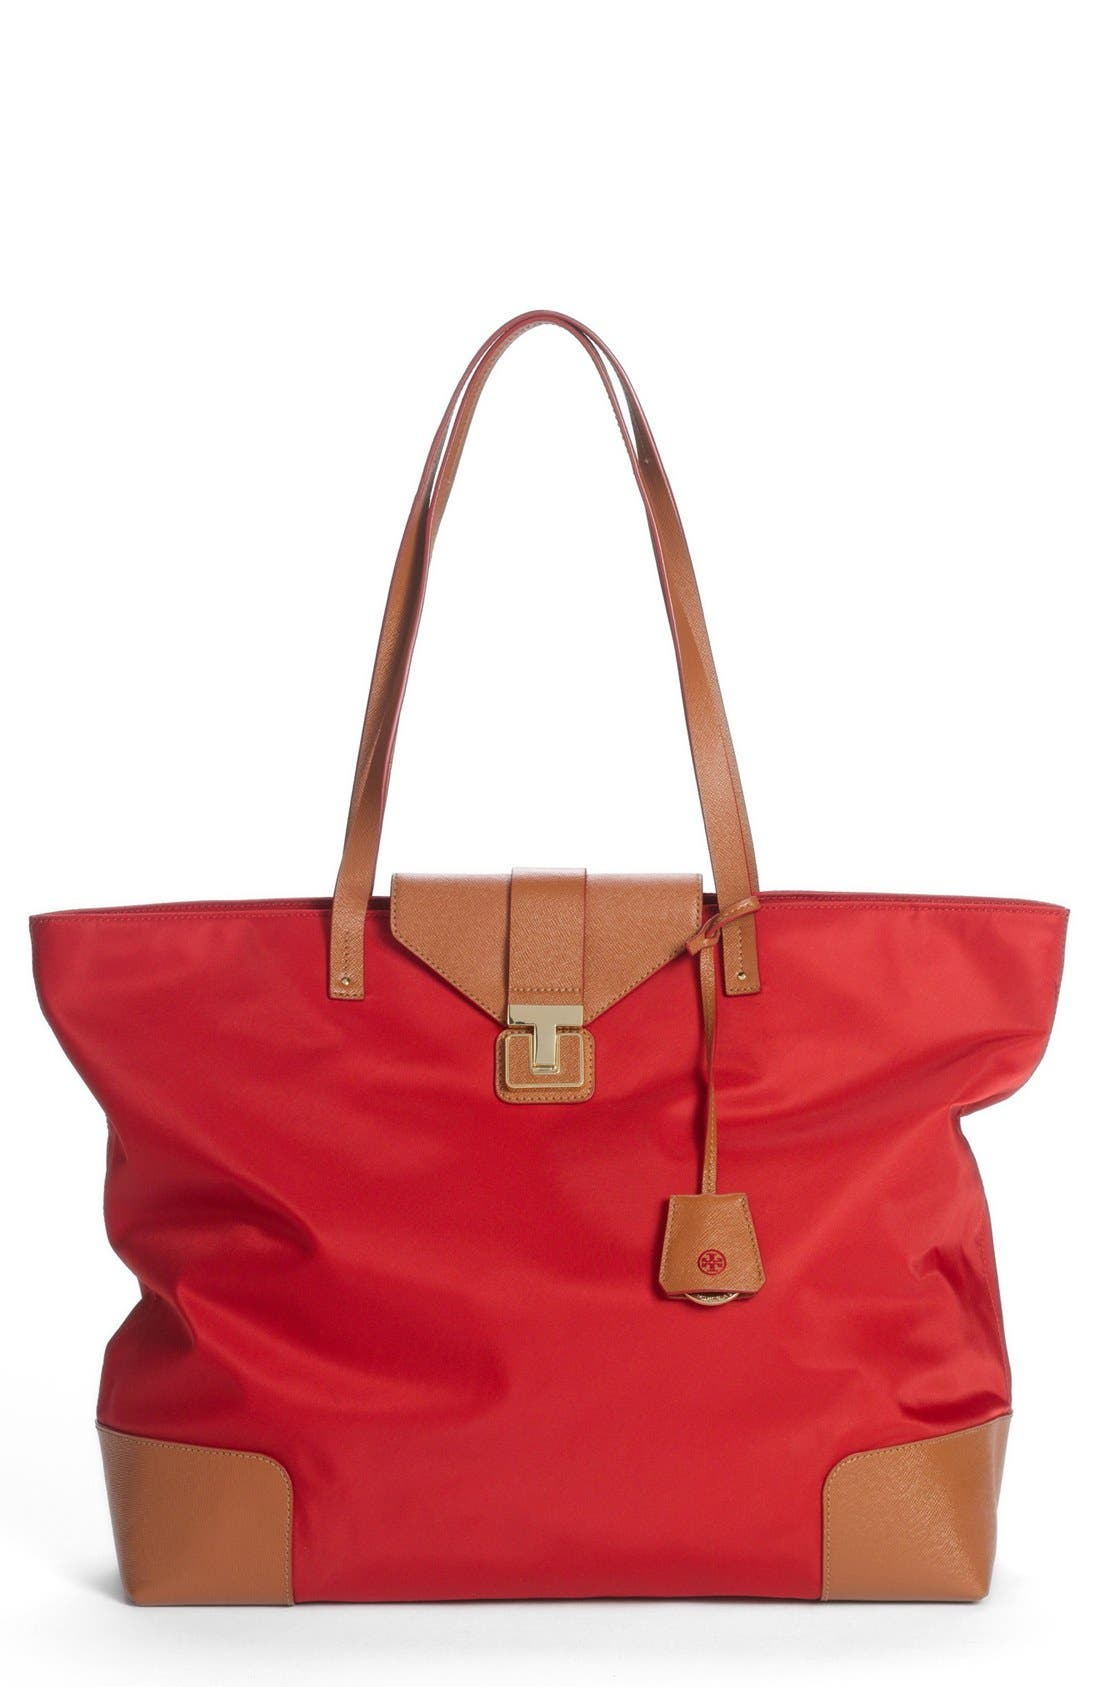 Alternate Image 1 Selected - Tory Burch 'Penn' Tote